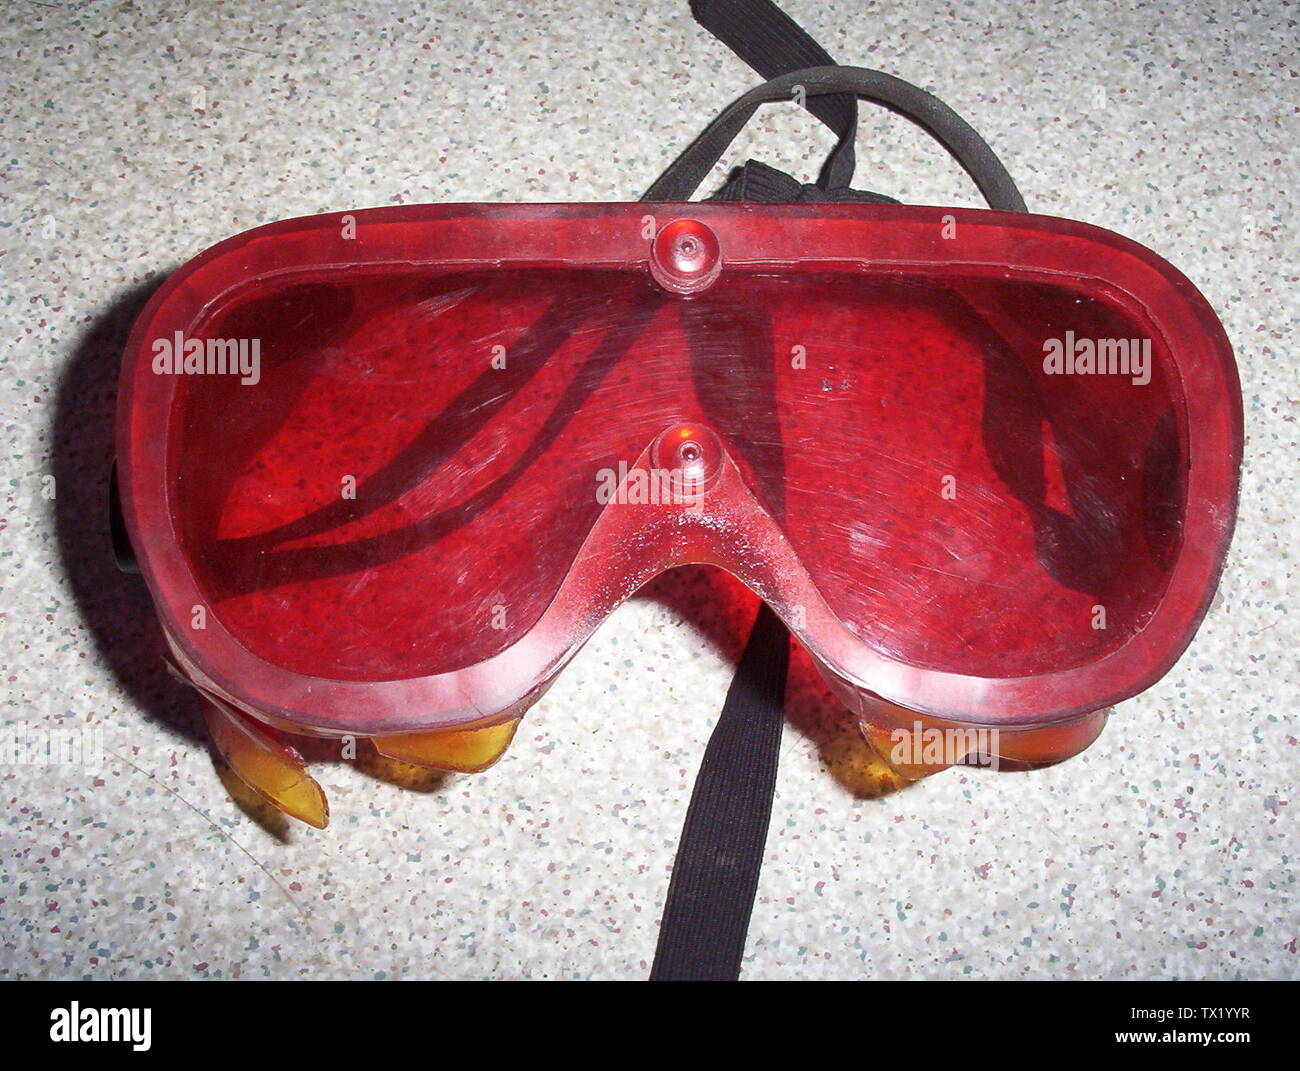 'These are used at night prior to going outside to adapt the eyes to the dark. Picture taken at Cambridge Bay, Nunavut, Canada.; 3 August 2005; Own work; CambridgeBayWeather; ' - Stock Image